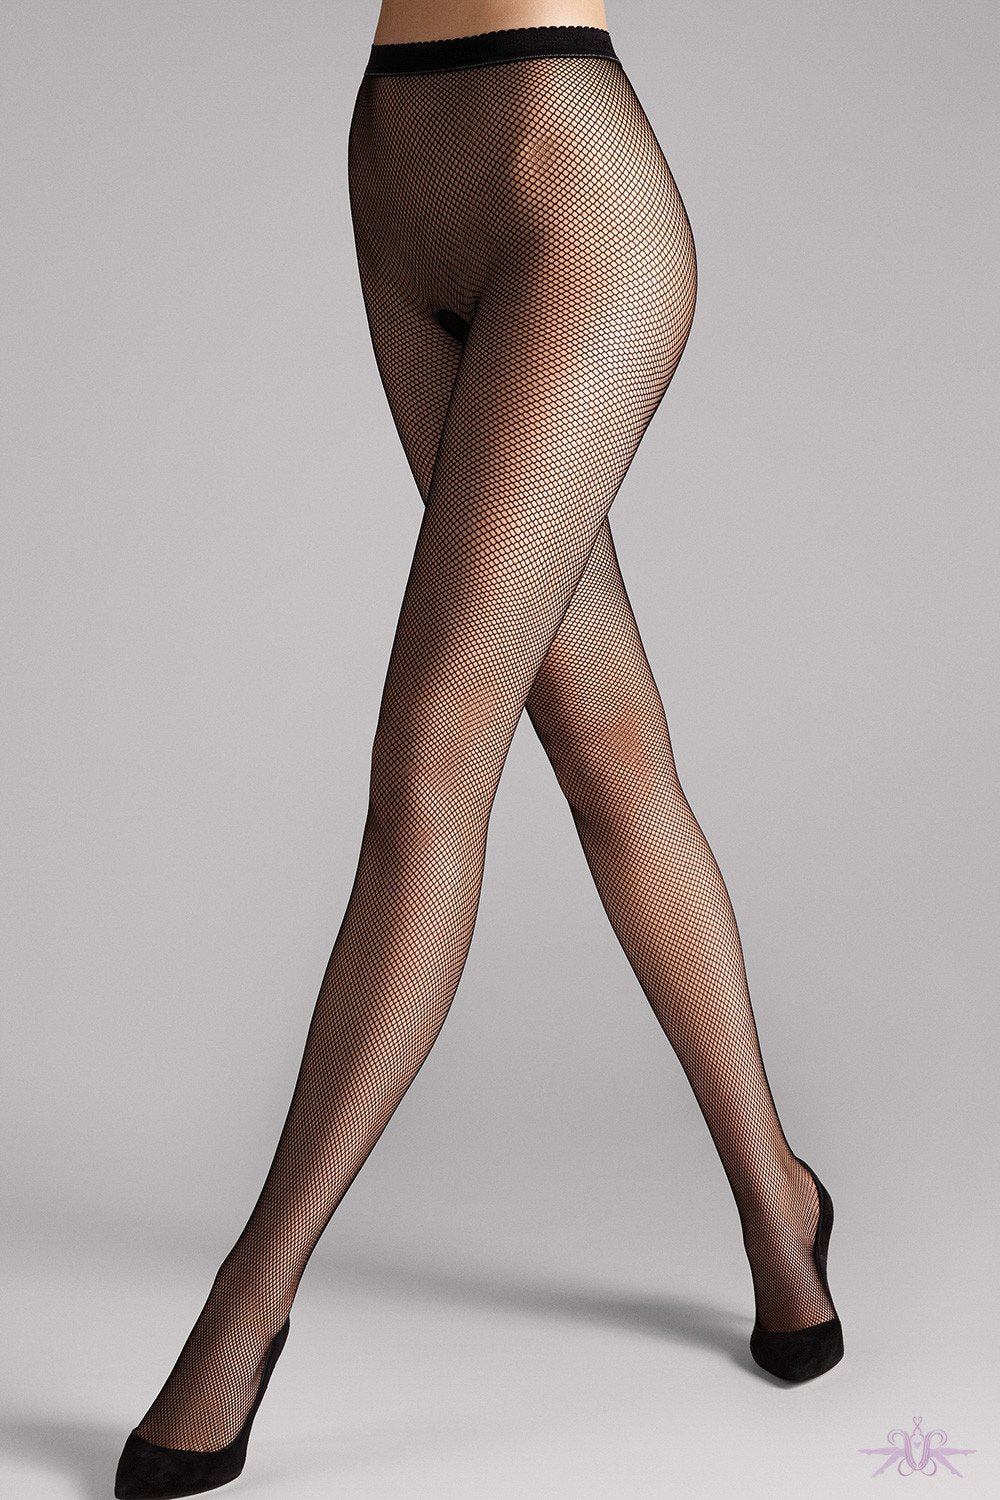 Wolford Twenties Fishnet Tights - The Hosiery Box